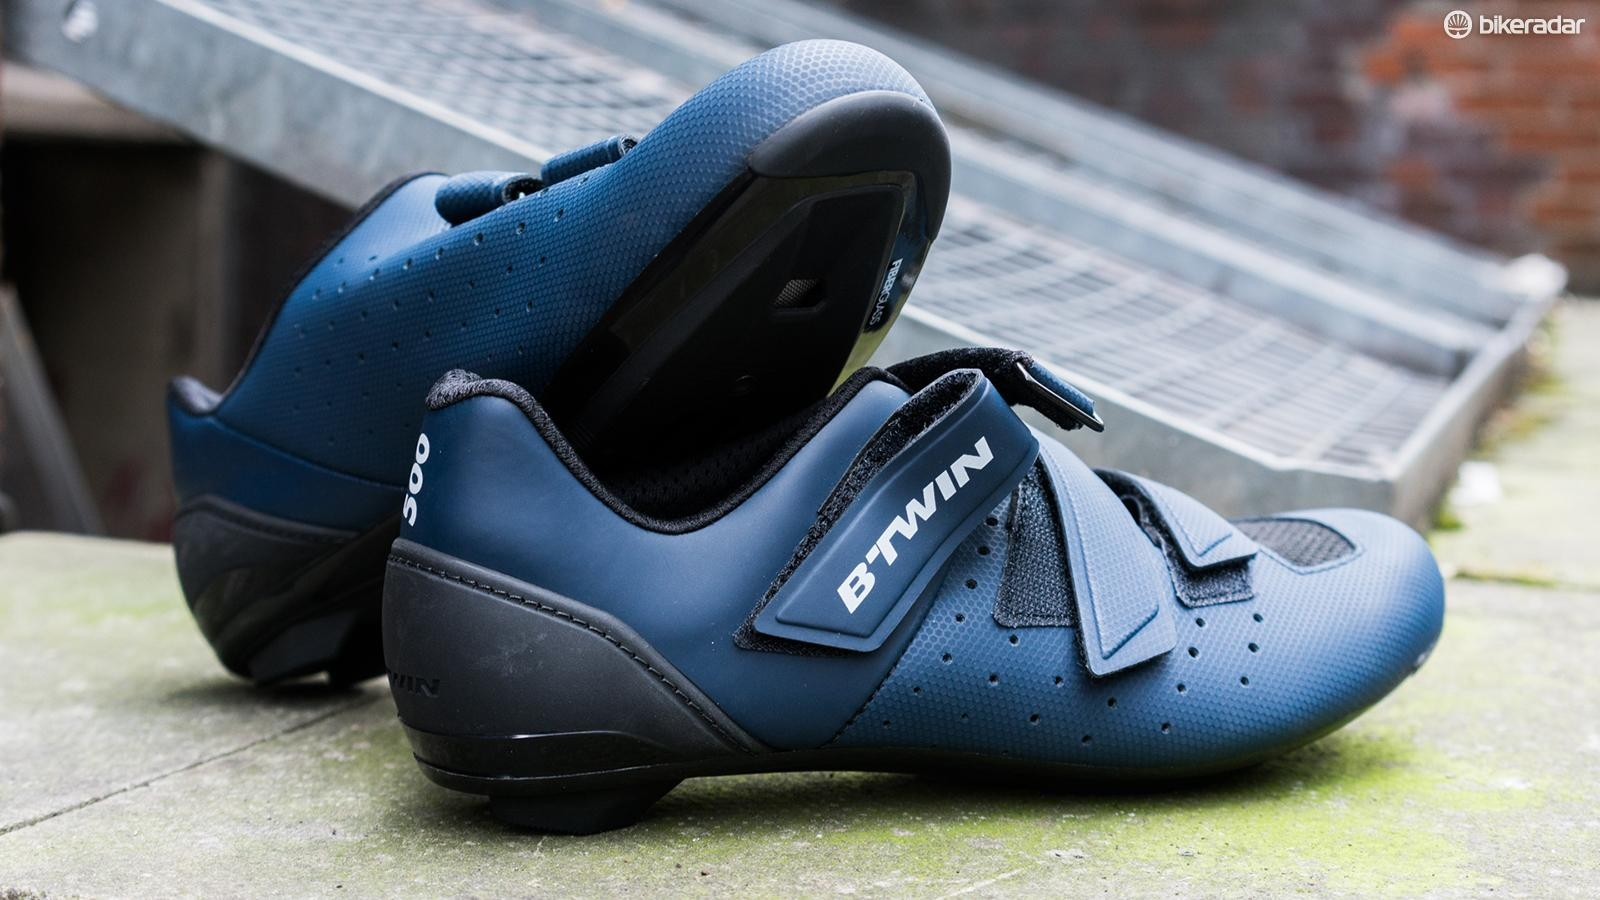 B'Twin's 500 Road Shoes are budget friendly and not at all bad looking